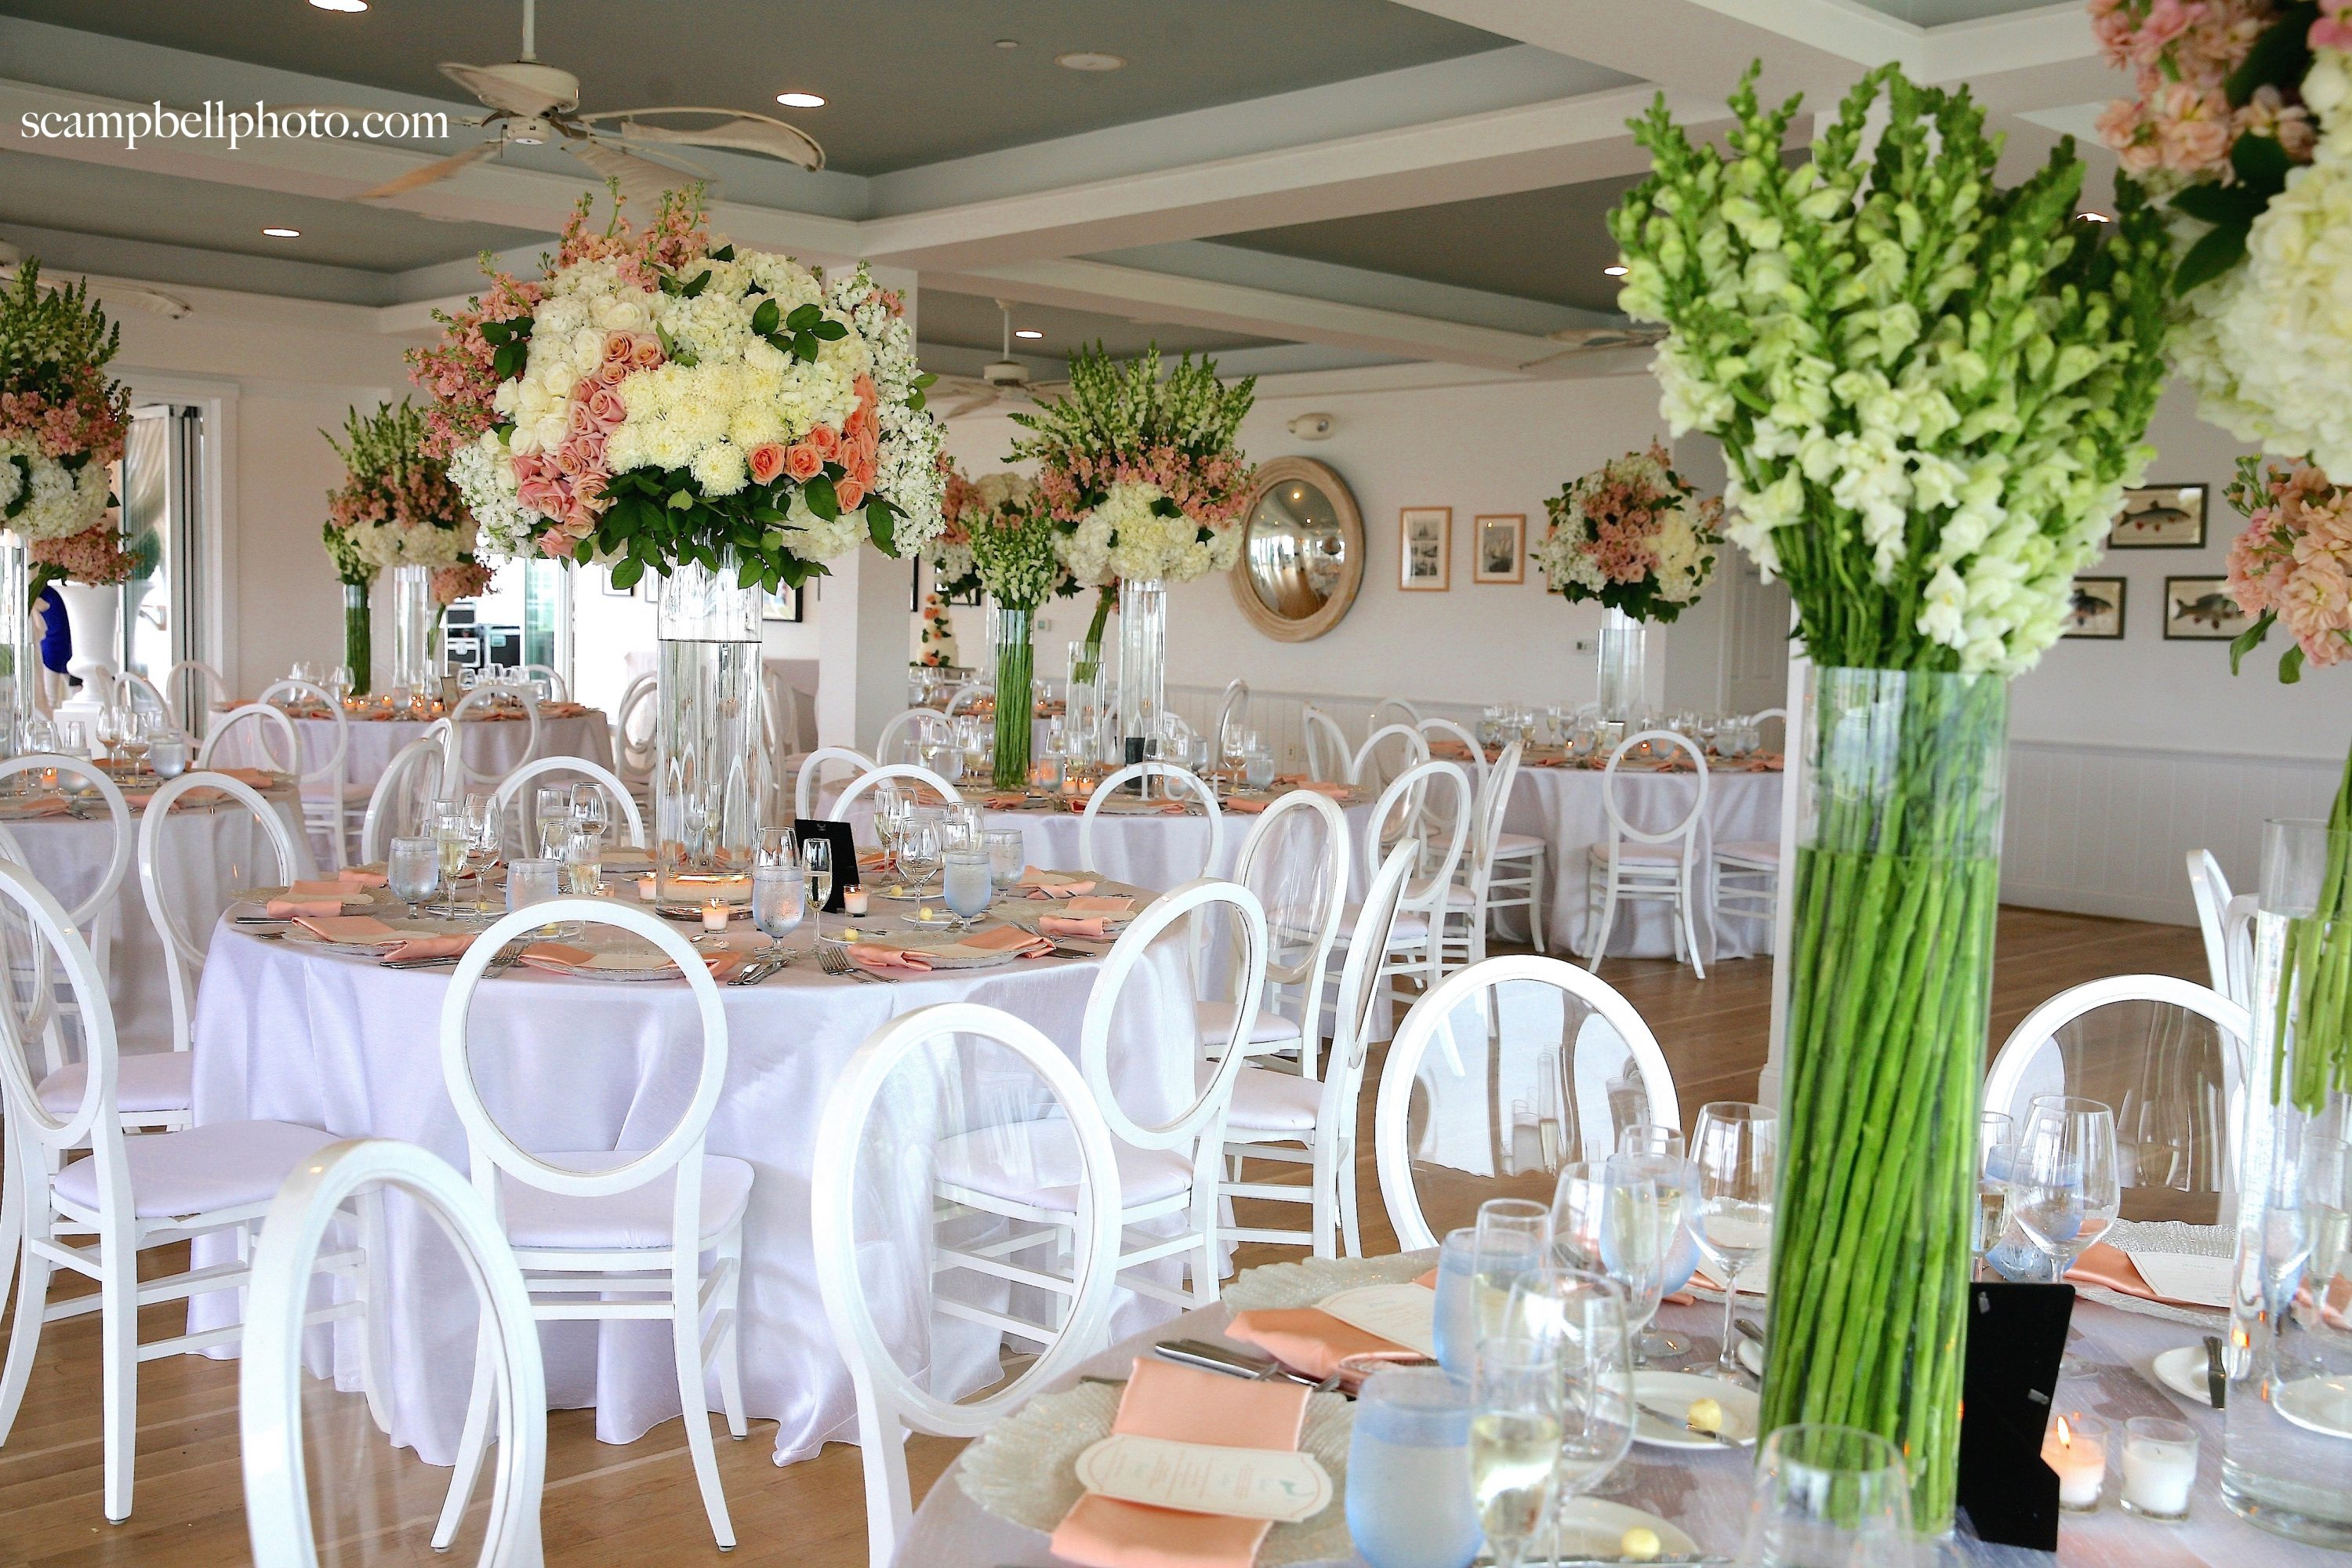 Flou(-e)r_Specialty_Floral_Events_Wedding_Reception